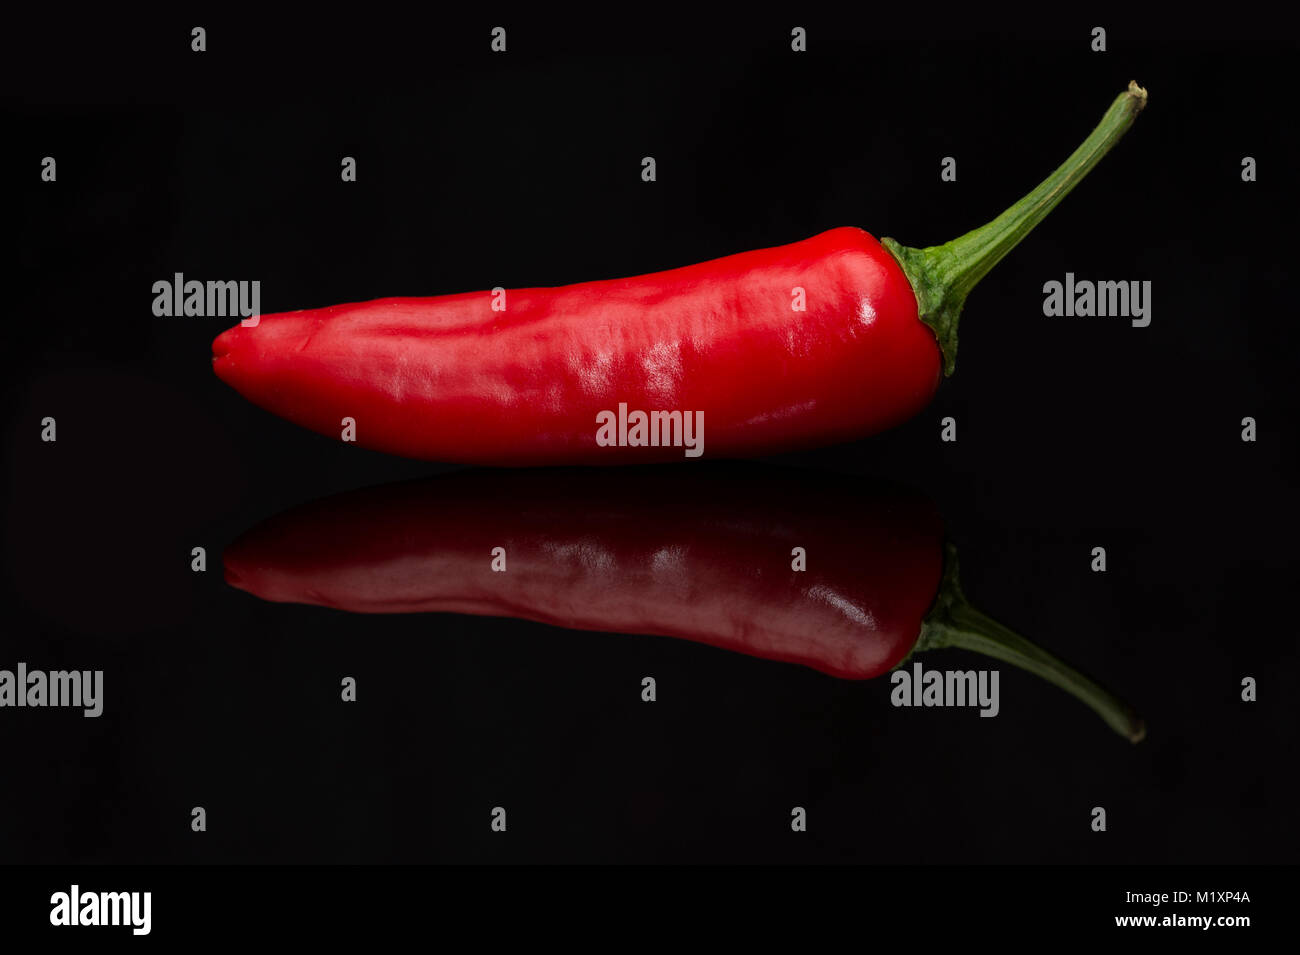 A Red Chili (Chilli) Pepper with reflection on a gloss black background - Stock Image